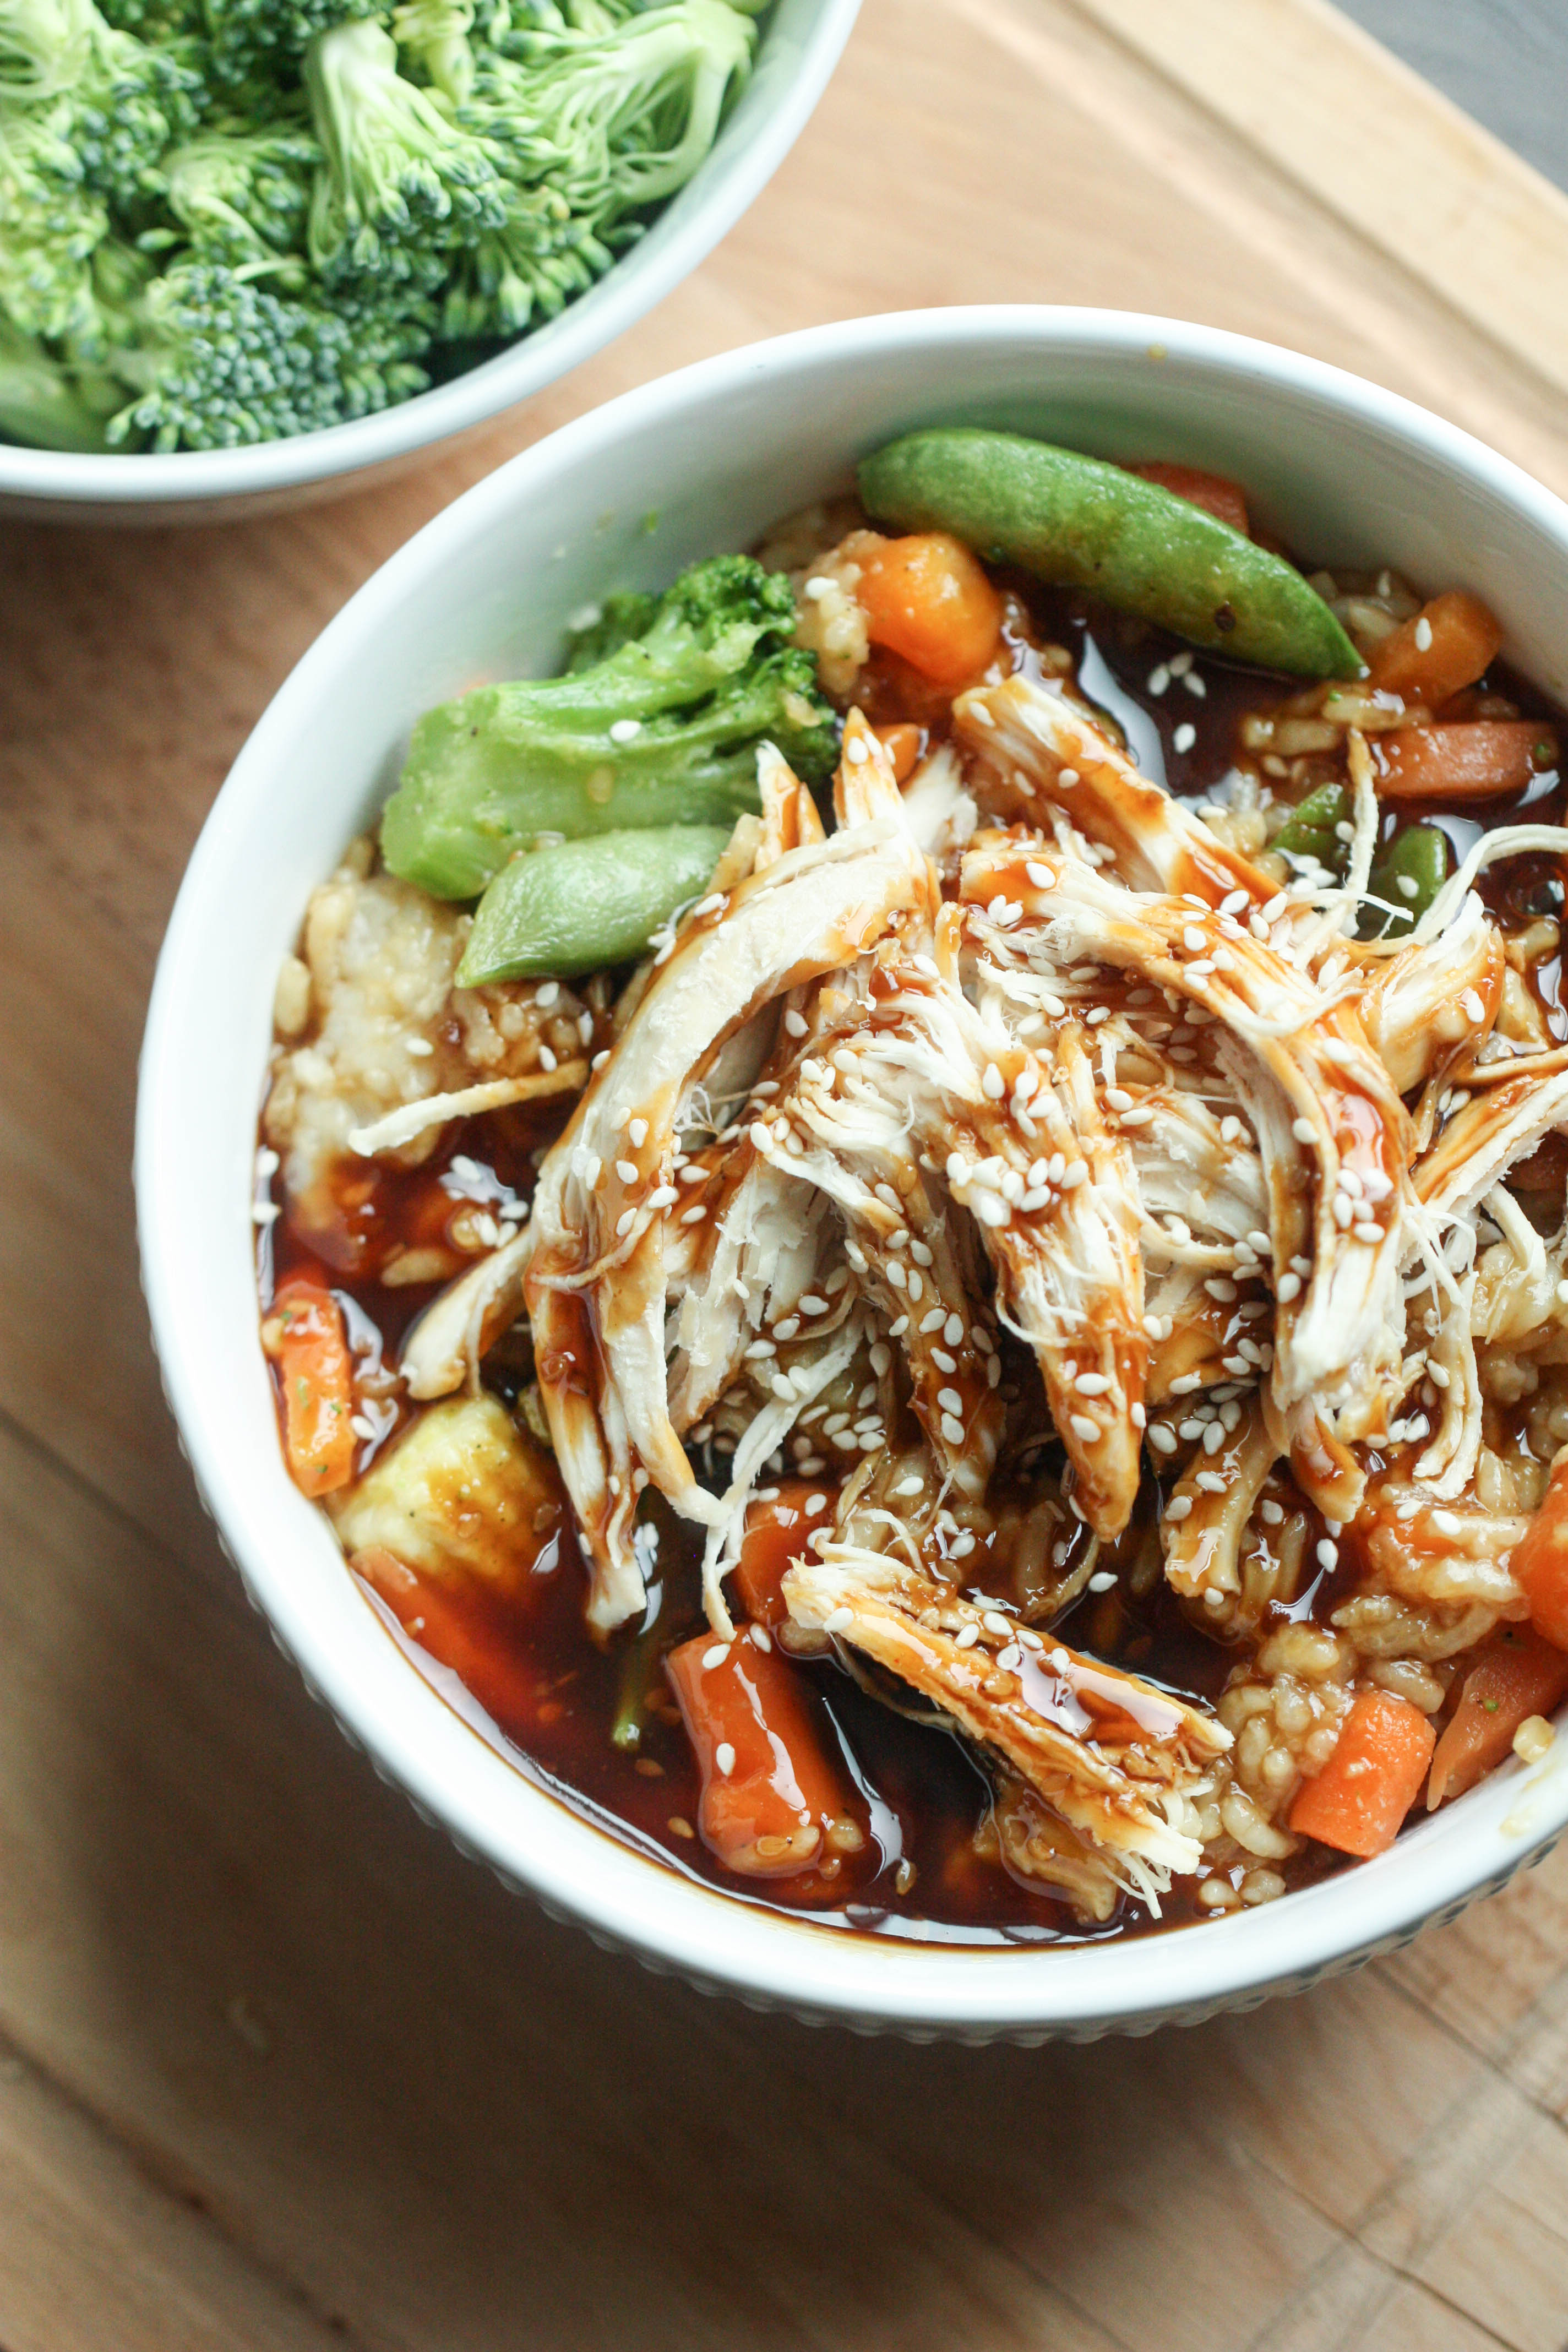 Teriyaki Chicken Bowls assembled with rice on the bottom, veggies in the middl, and chicken drizzled with extra teriyaki sauce and sesame seeds on top.